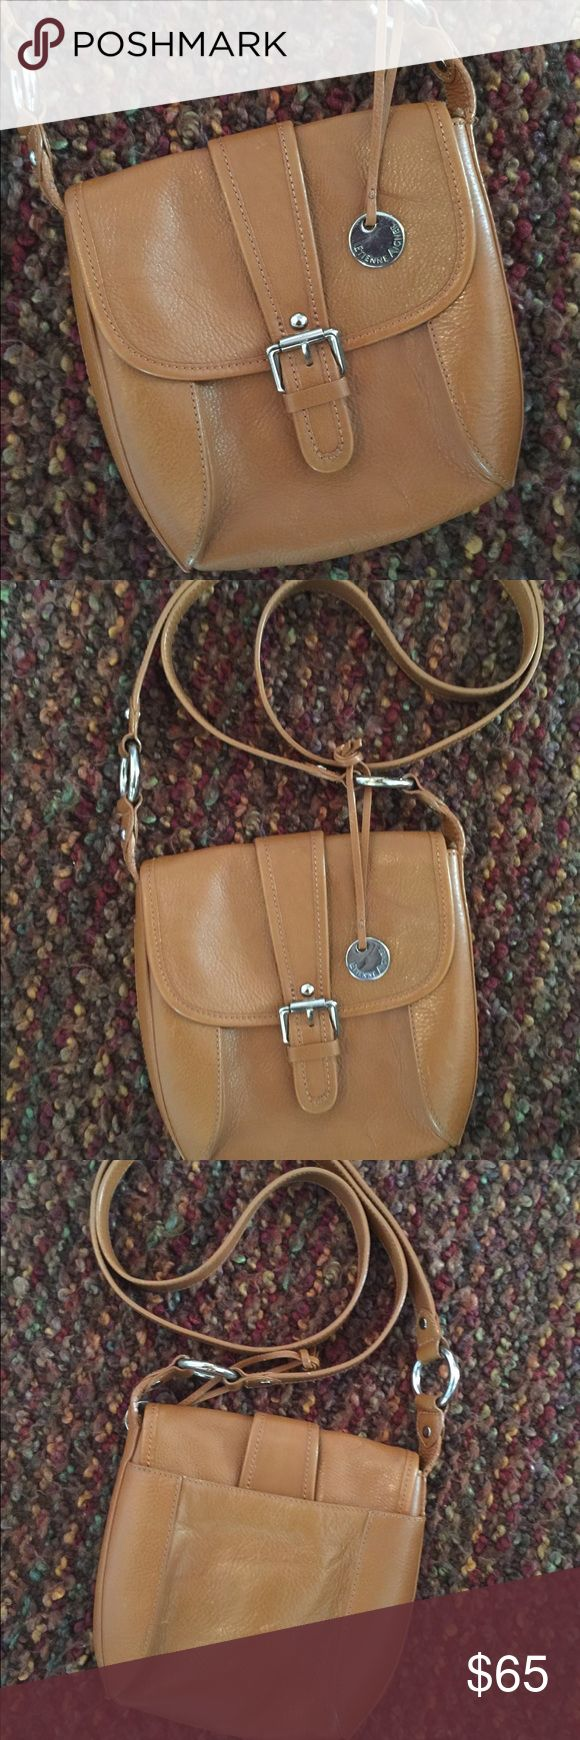 Etienne Aigner crossbody bag Camel colored pebble leather crossbody bag, perfect for worry-free, hands-free shopping or styling Etienne Aigner Bags Crossbody Bags